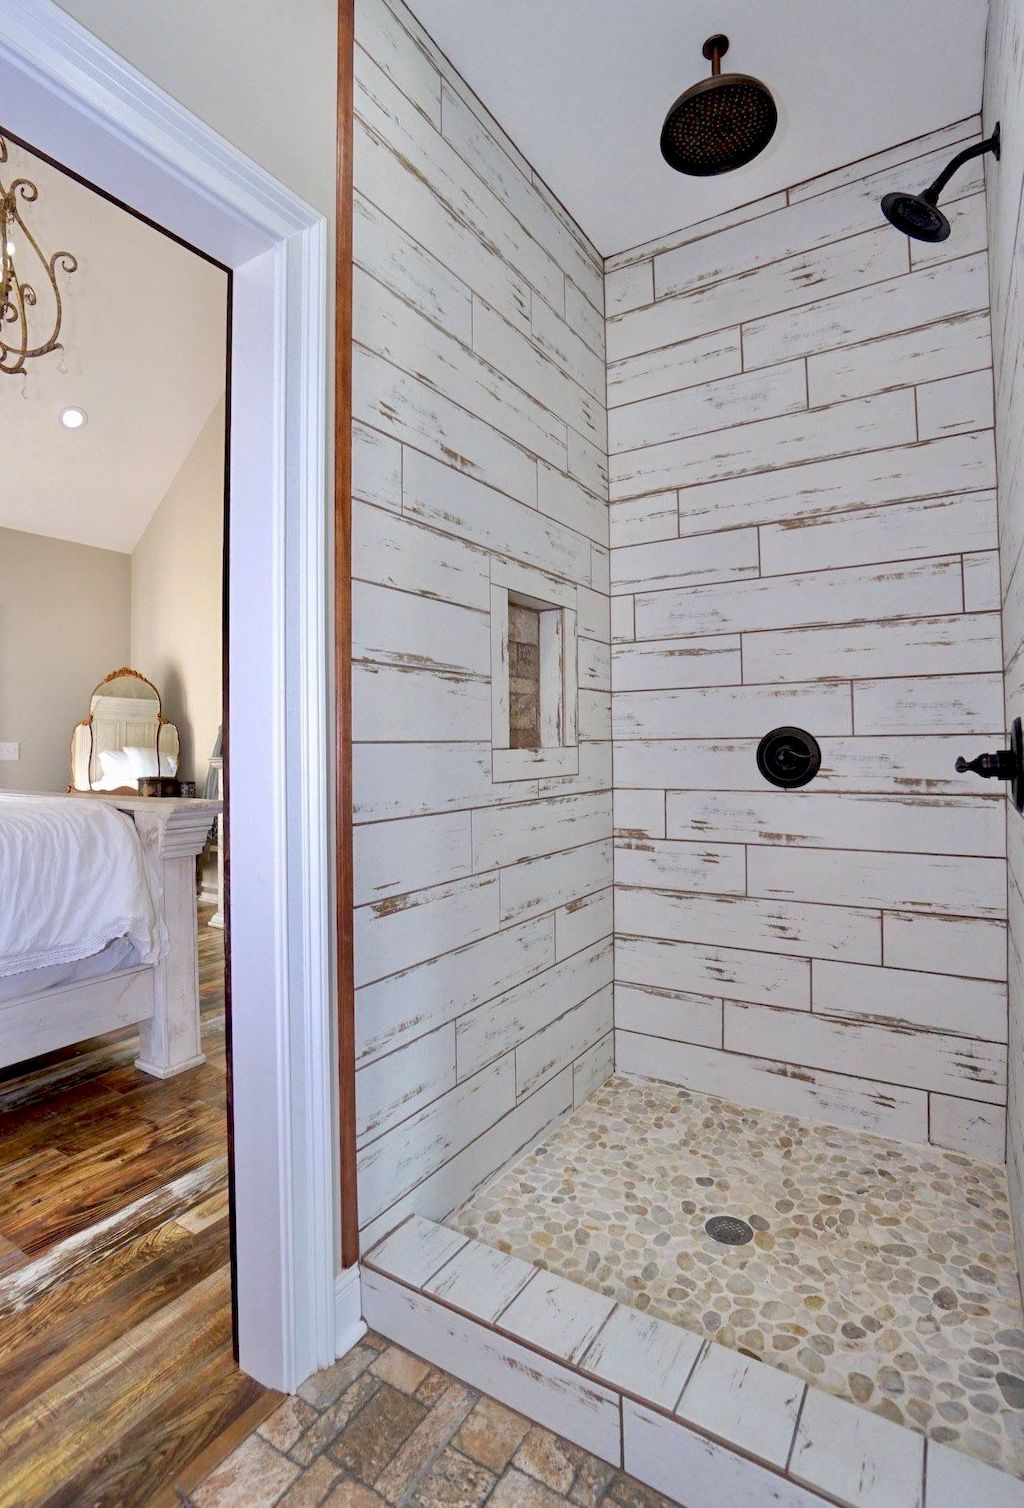 Awesome 60 Insane Farmhouse Shower Tiles Remodel Ideas Https Homeideas Co 14053 60 Insane Farmhouse Farmhouse Shower Rustic Bathroom Shower Bathrooms Remodel